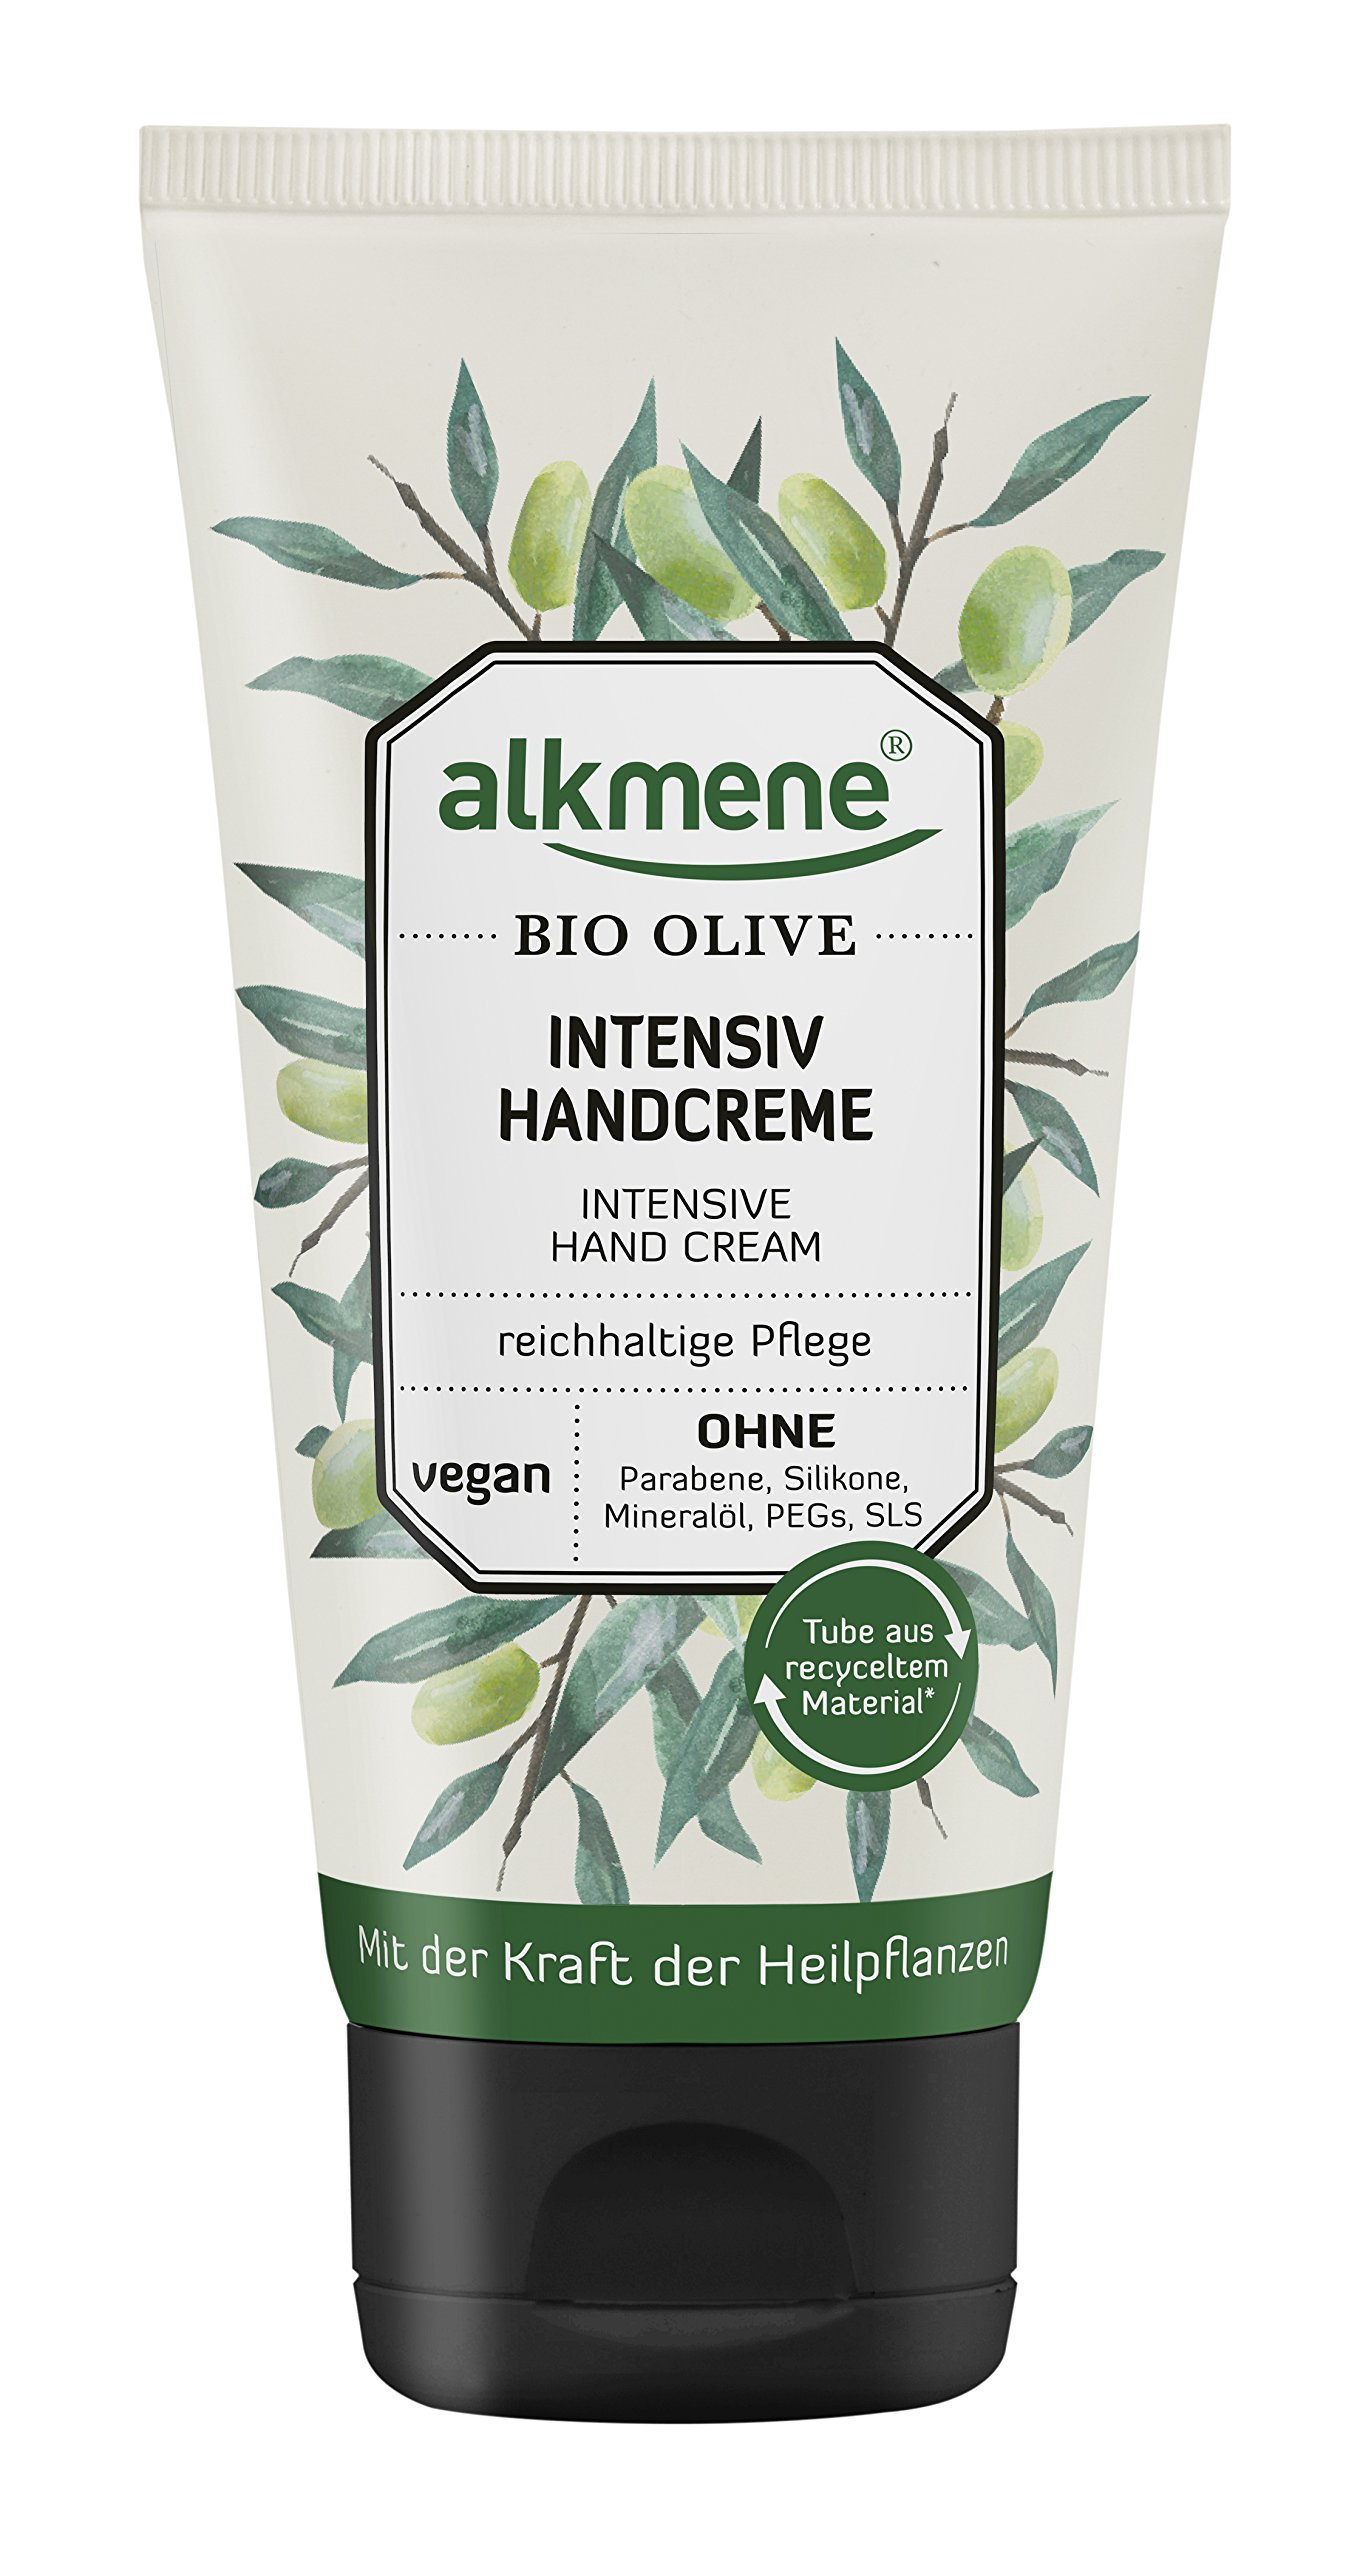 Alkmene Intensive Organic Olive Oil Hand Cream Vegan Paraben-free & Organic Cream for Very Dry Hands 75 ml